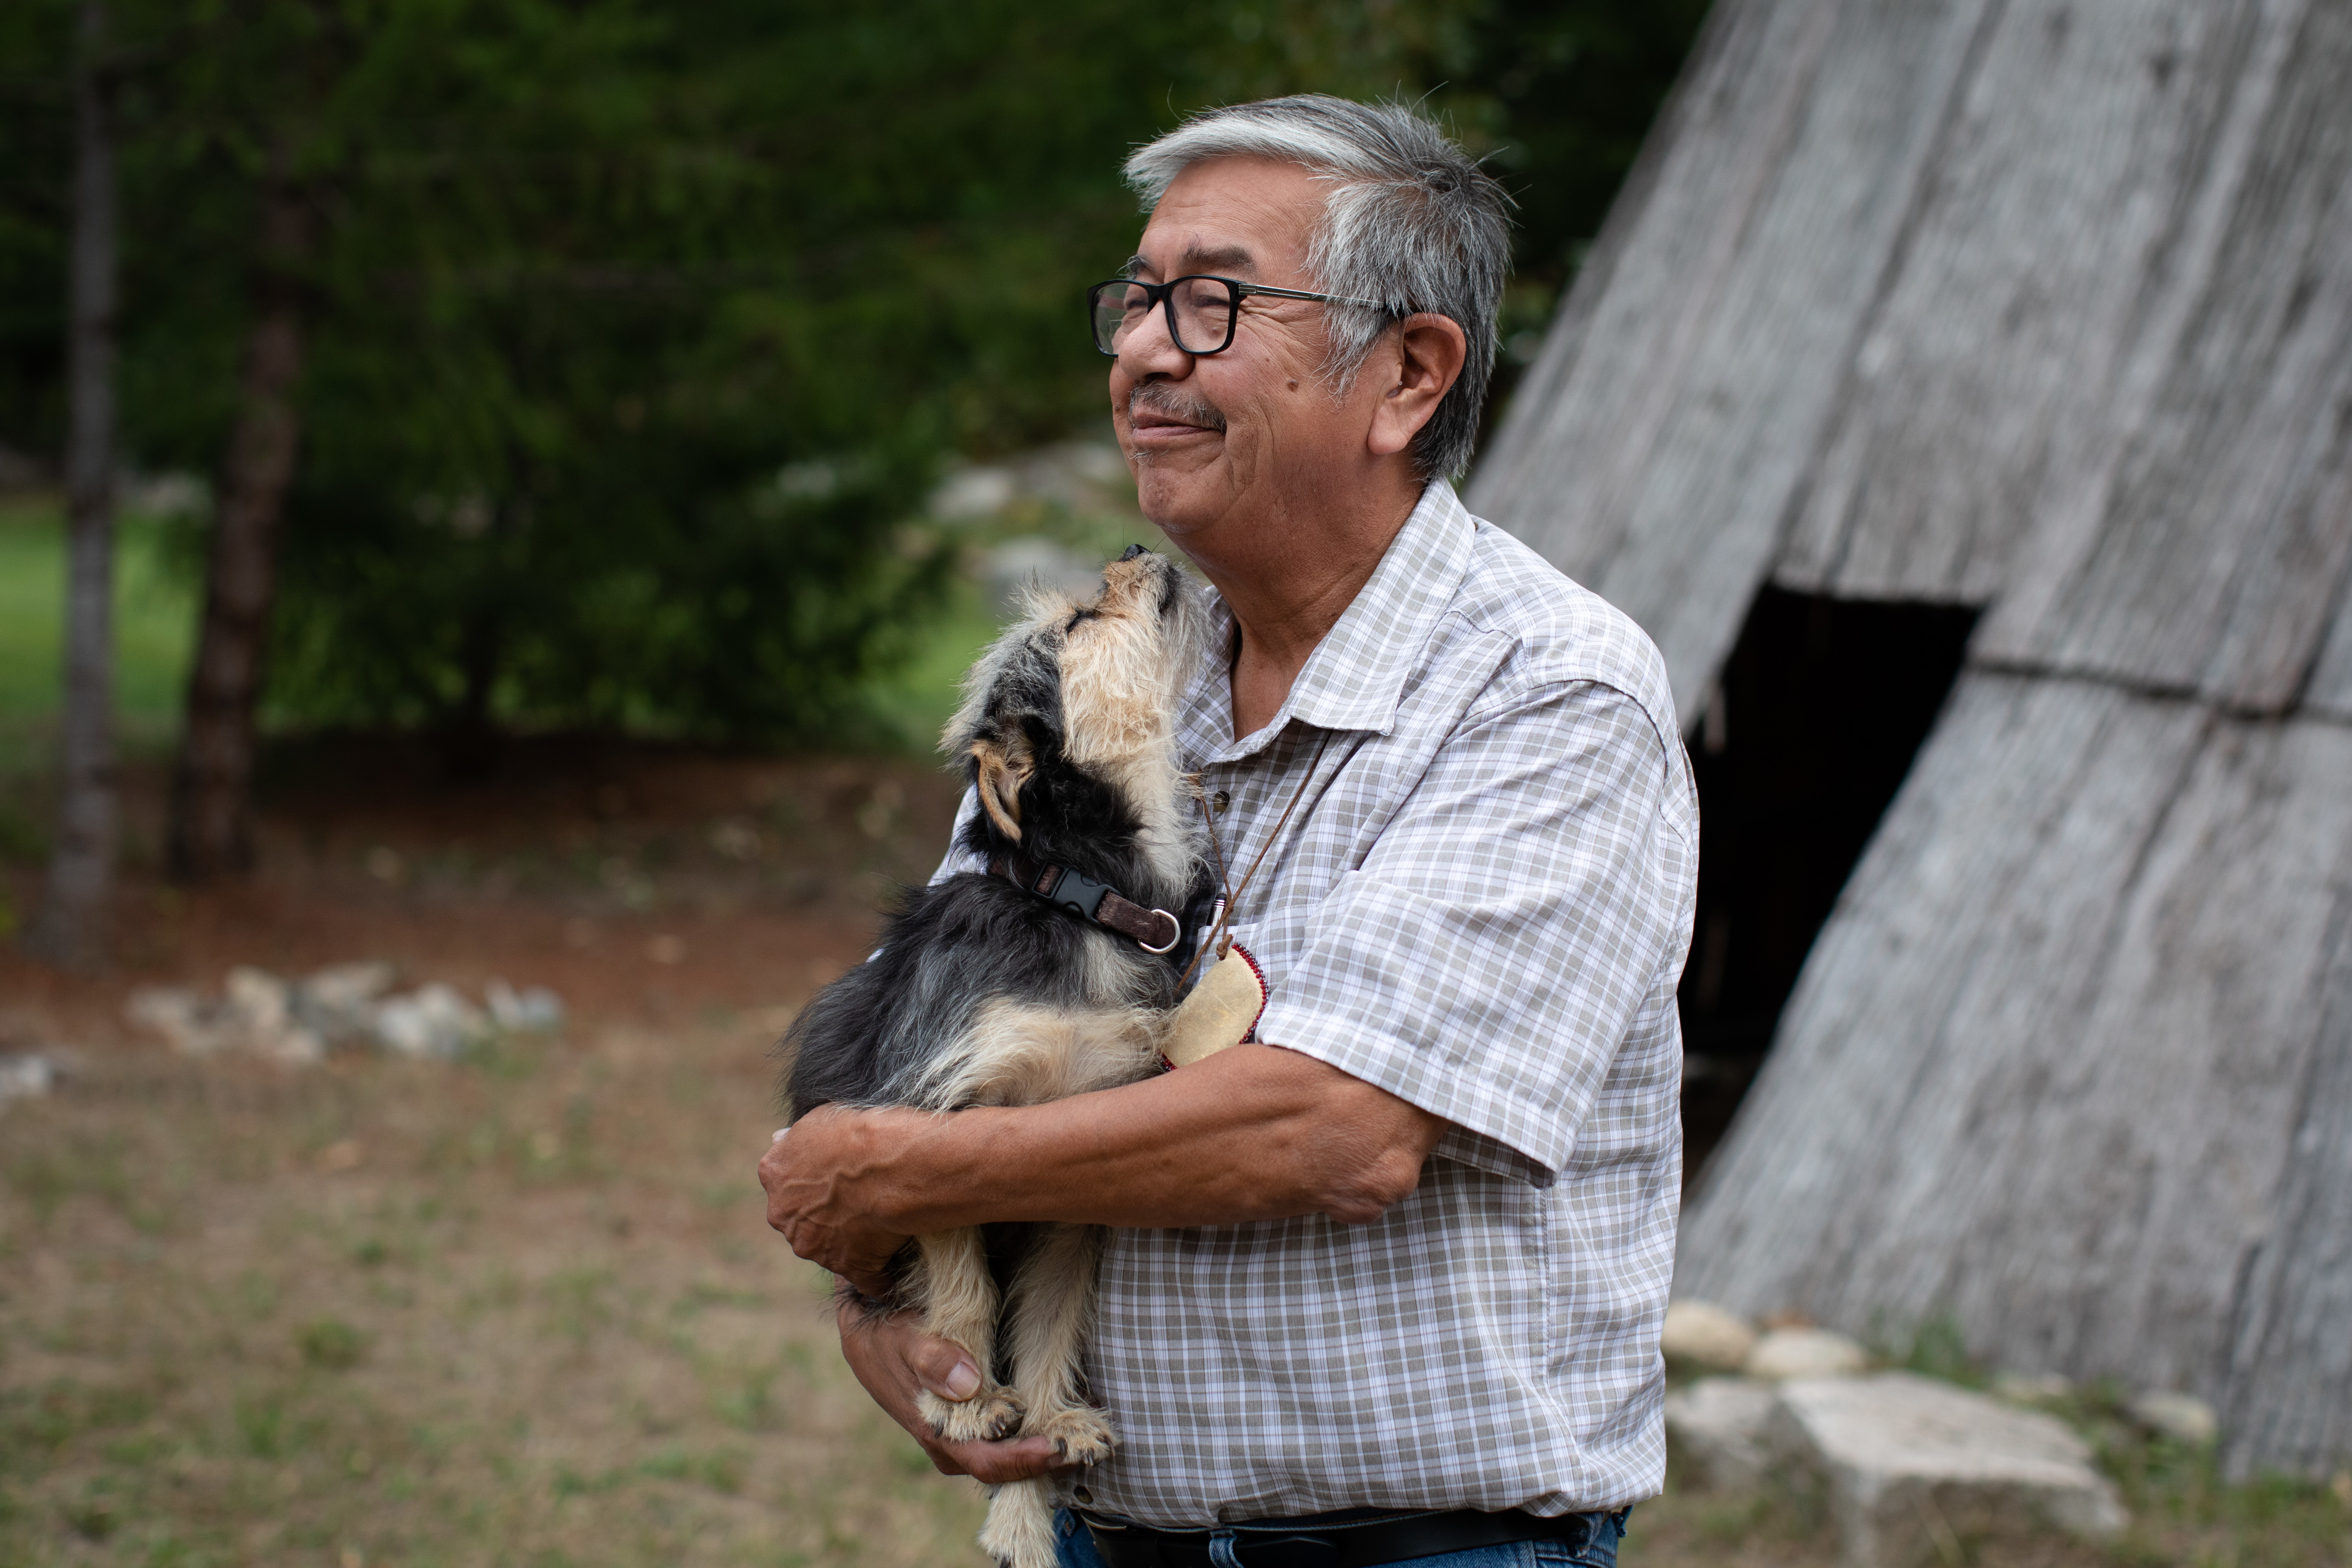 Byron Spinks, a member of Lytton First Nation, holds his dog, Baby, whom he lost during the wildfire and was reunited with weeks later, in Boston Bar, B.C., on Sept. 3. (Maggie MacPherson/CBC)